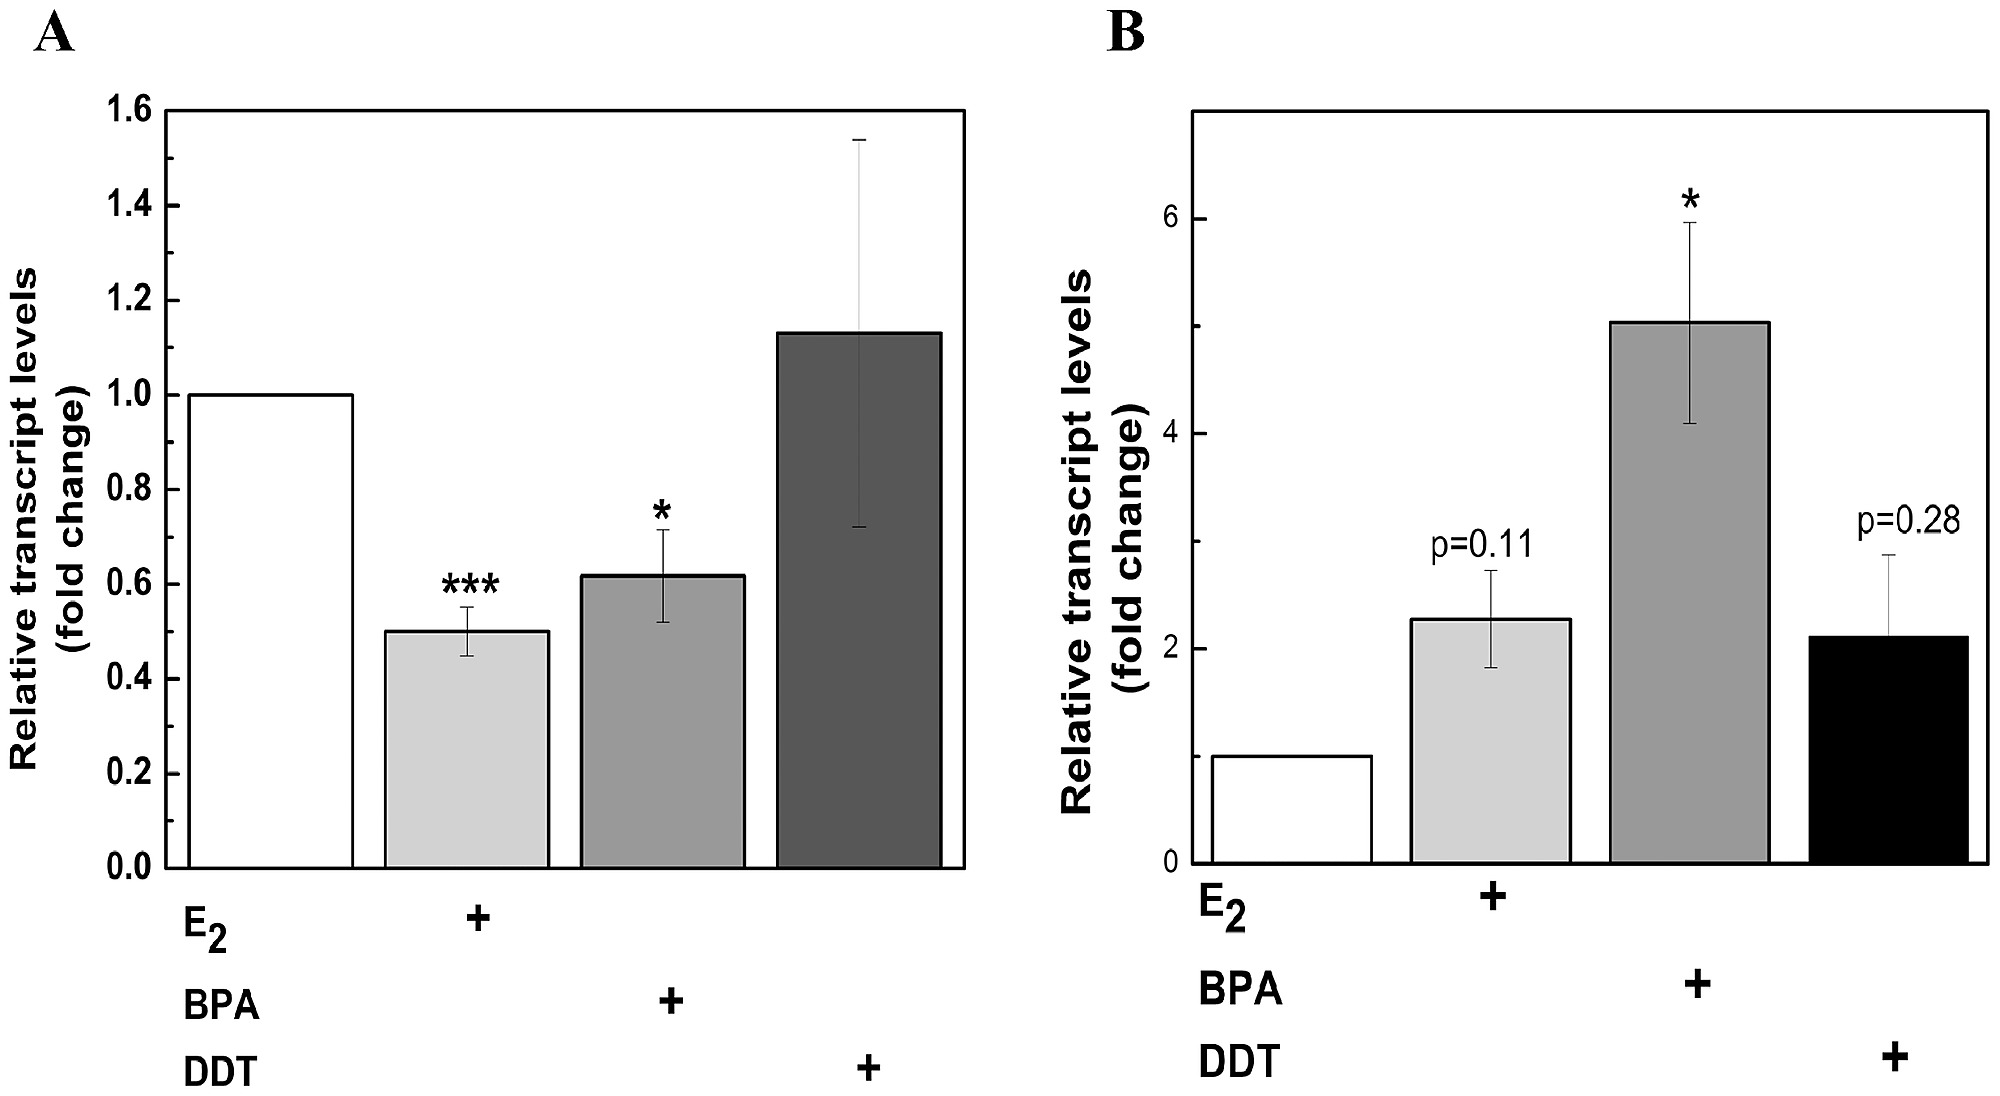 hight resolution of effects of e2 bpa and ddt on mir 21 gene expression in mcf 7 andeffects